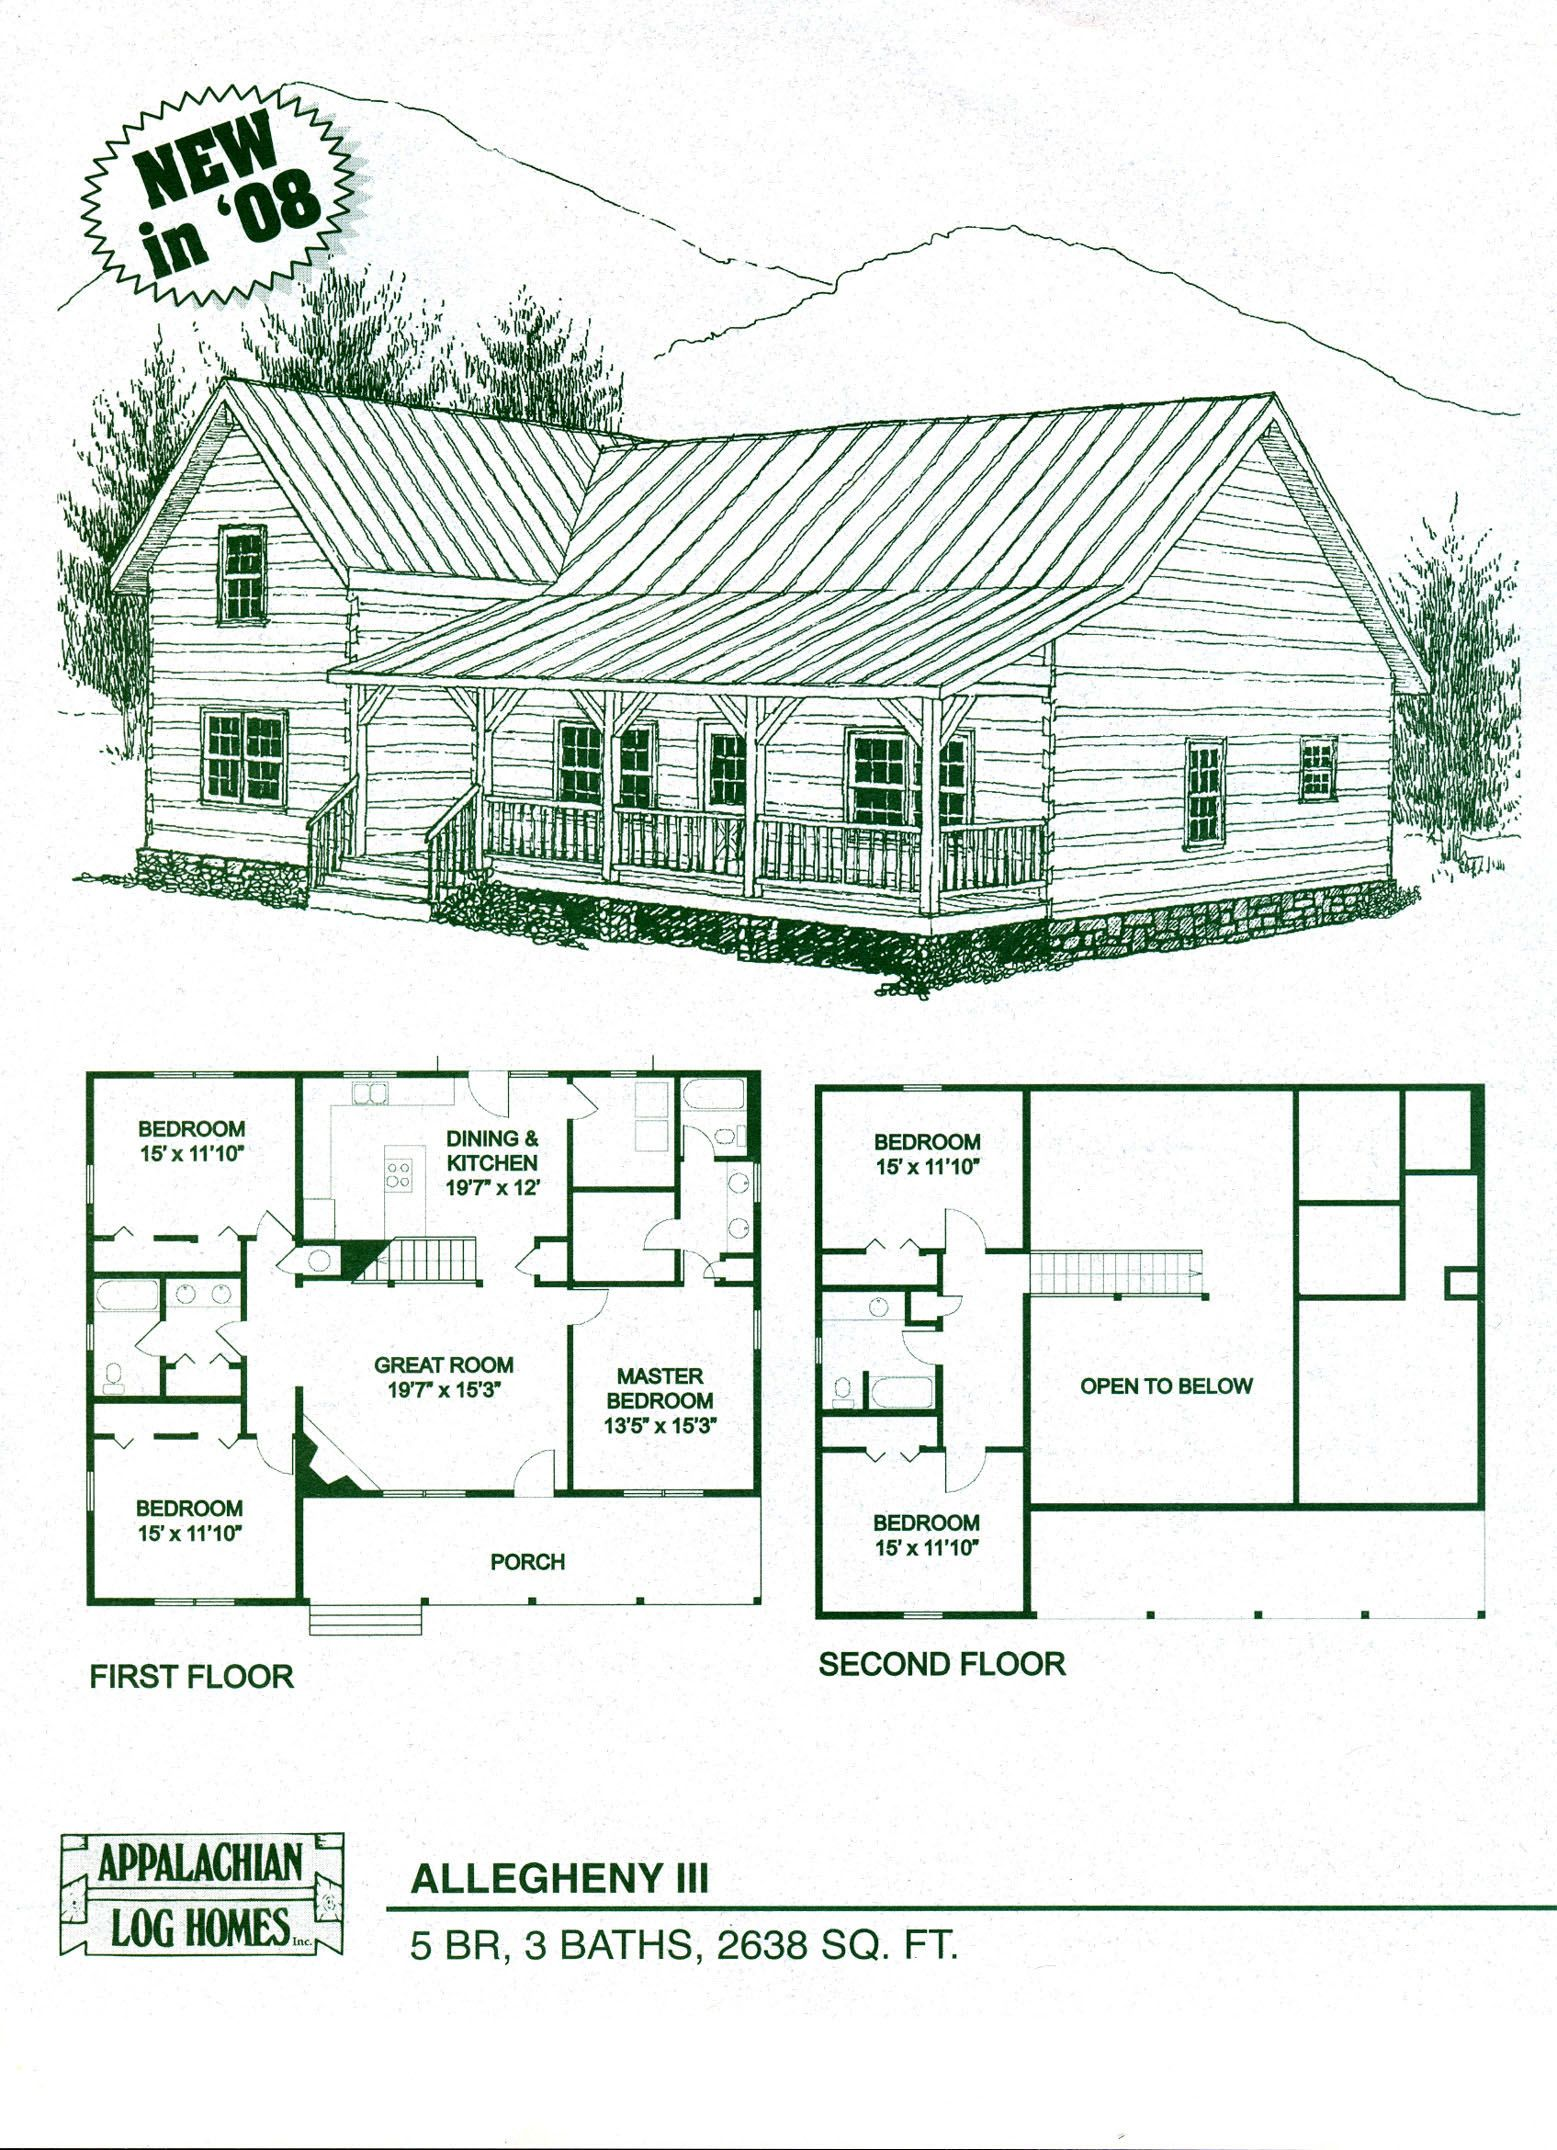 Log home floor plans log cabin kits appalachian log for Simple log cabin plans free